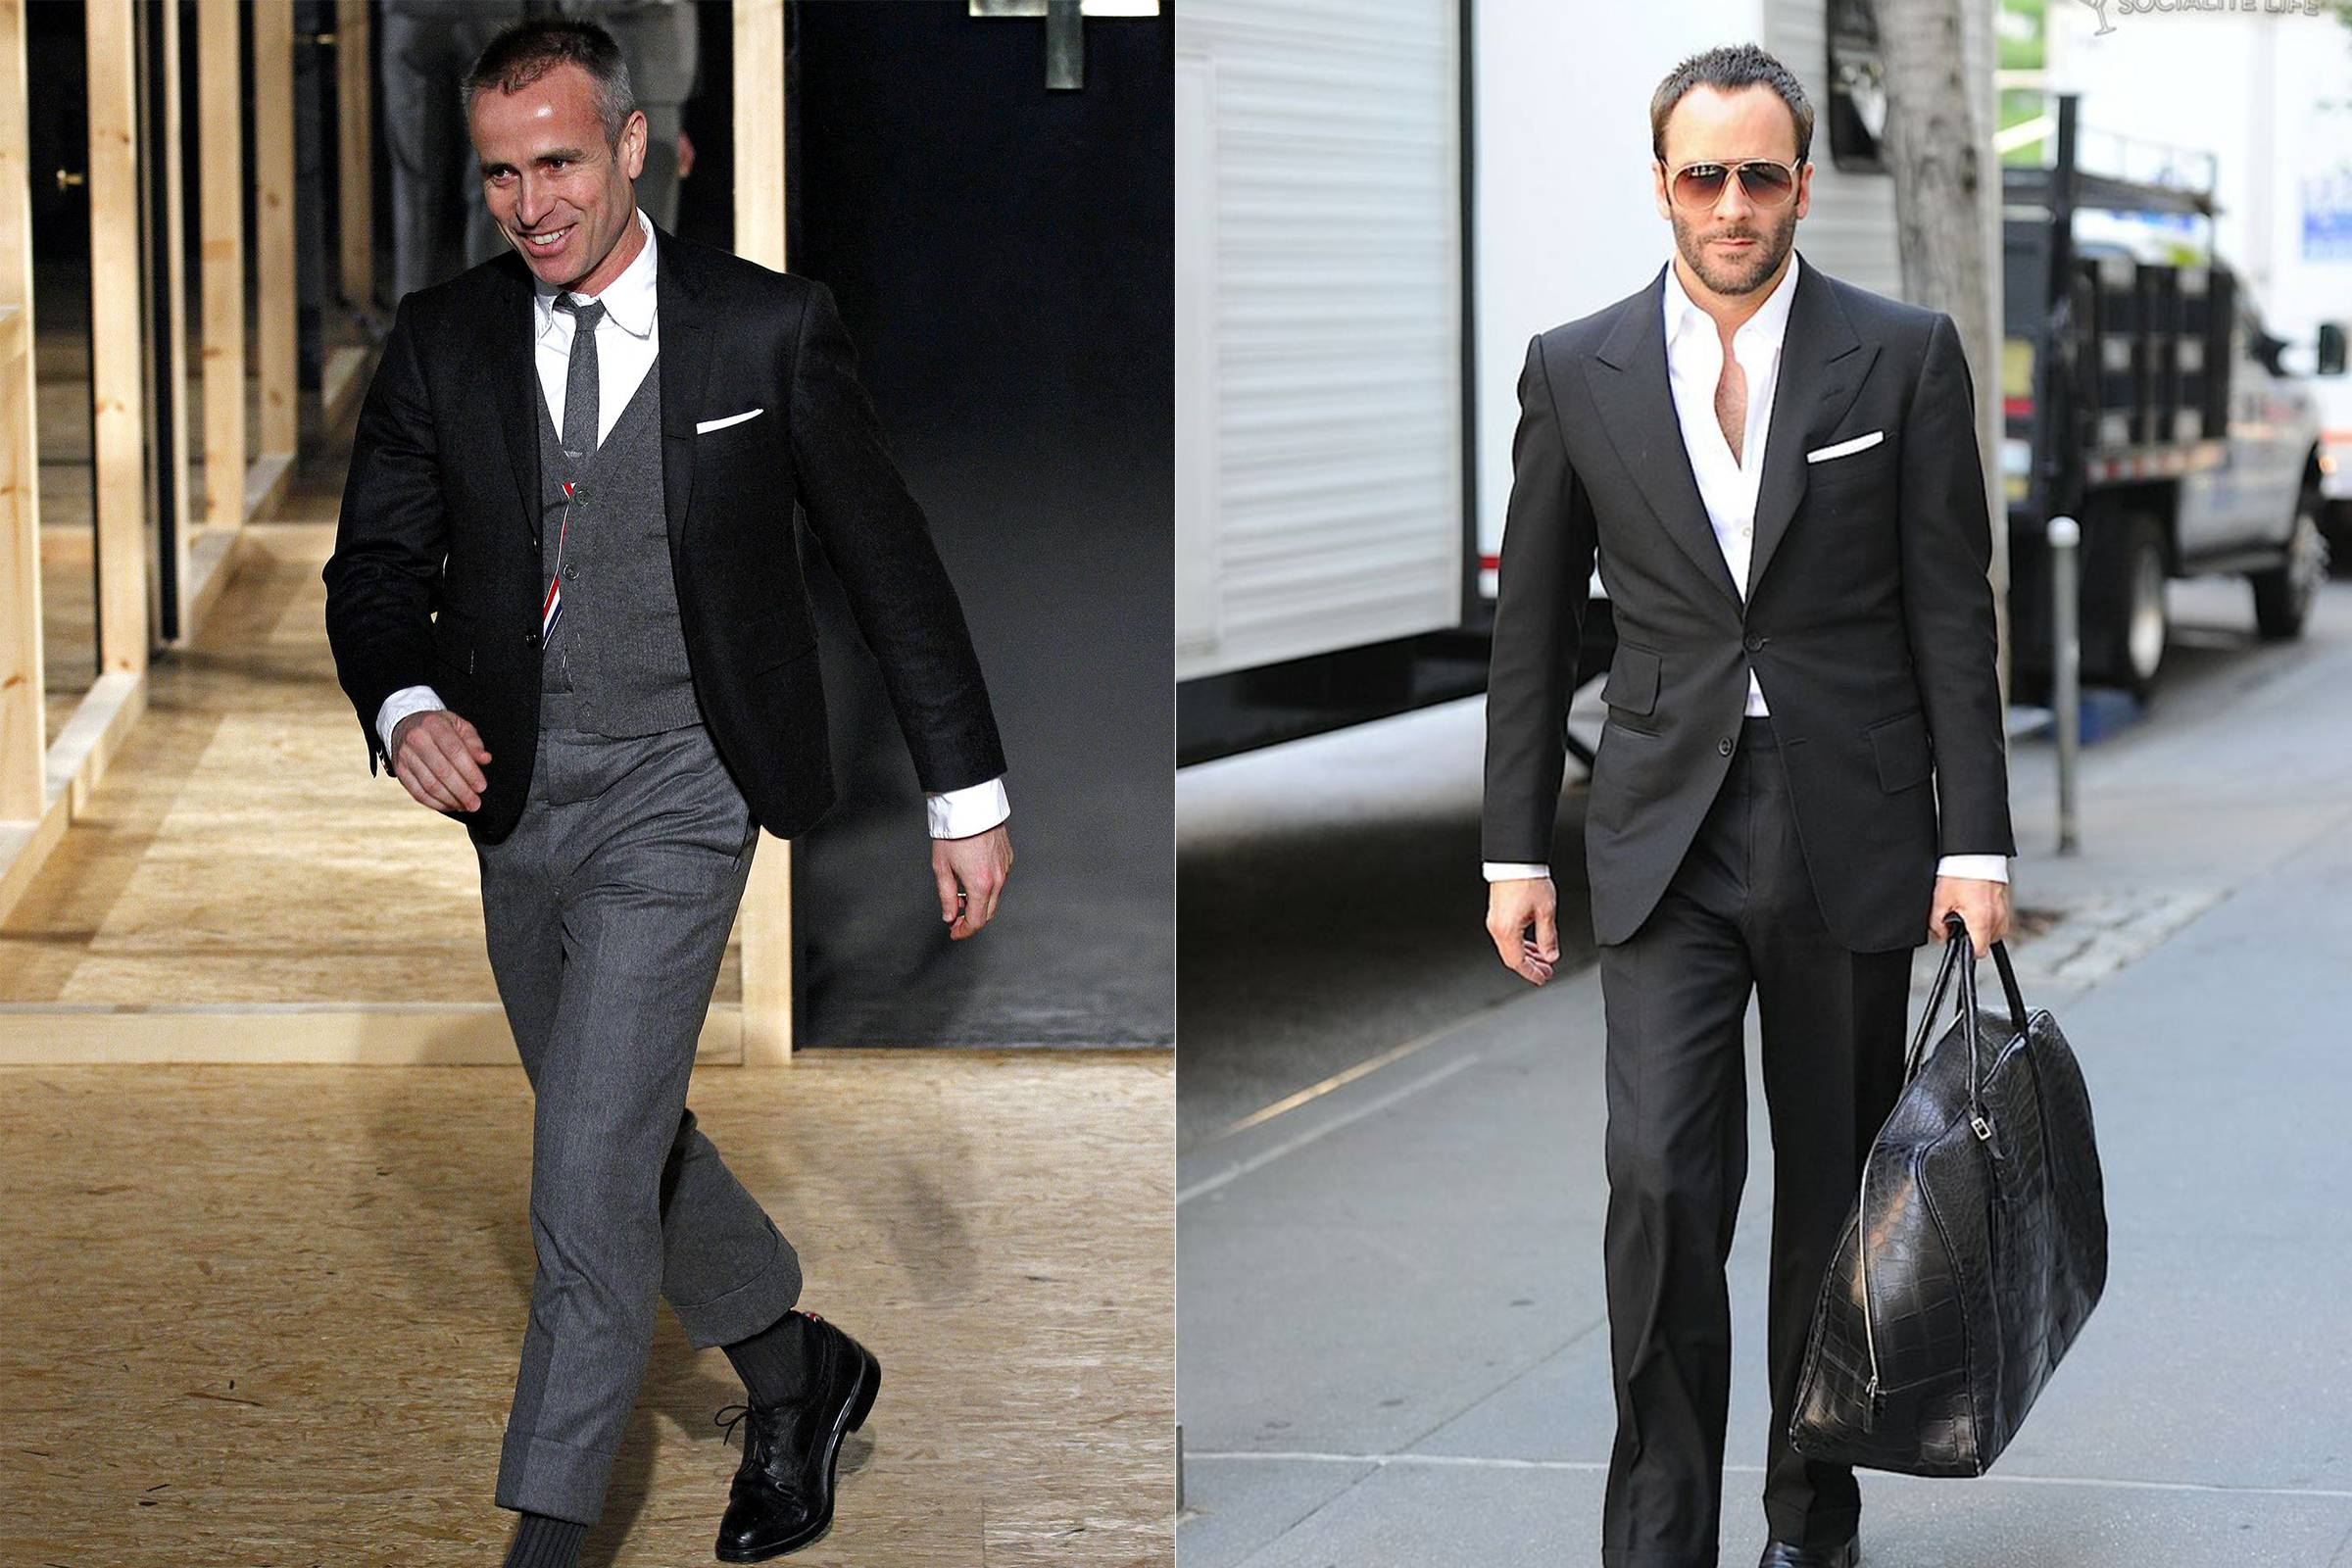 Thom Browne (left) and Tom Ford (right) both in their signature uniform: suits of their own design